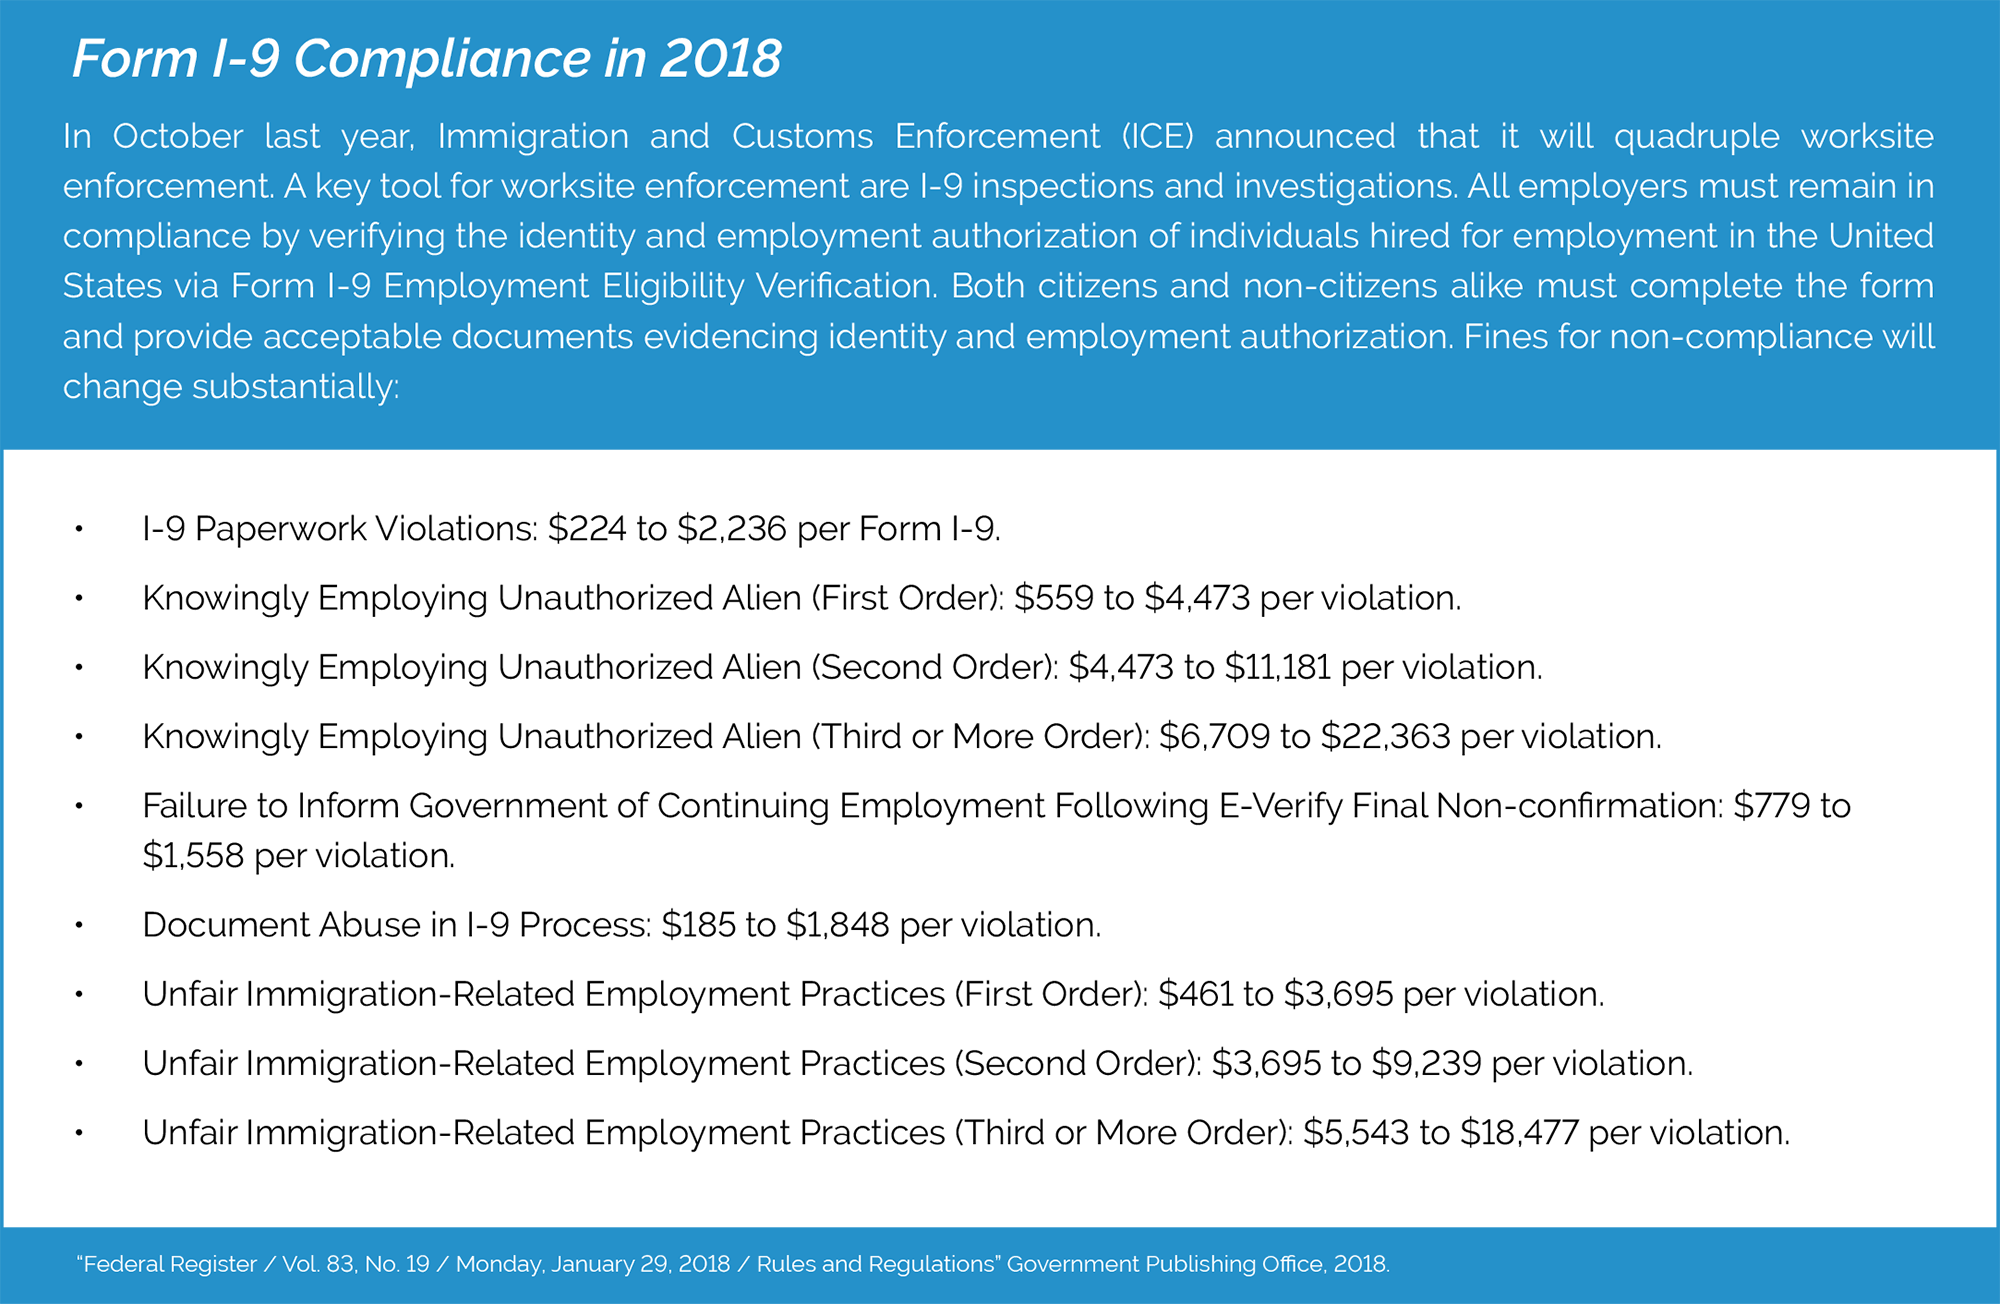 Form I-9 Compliance in 2018